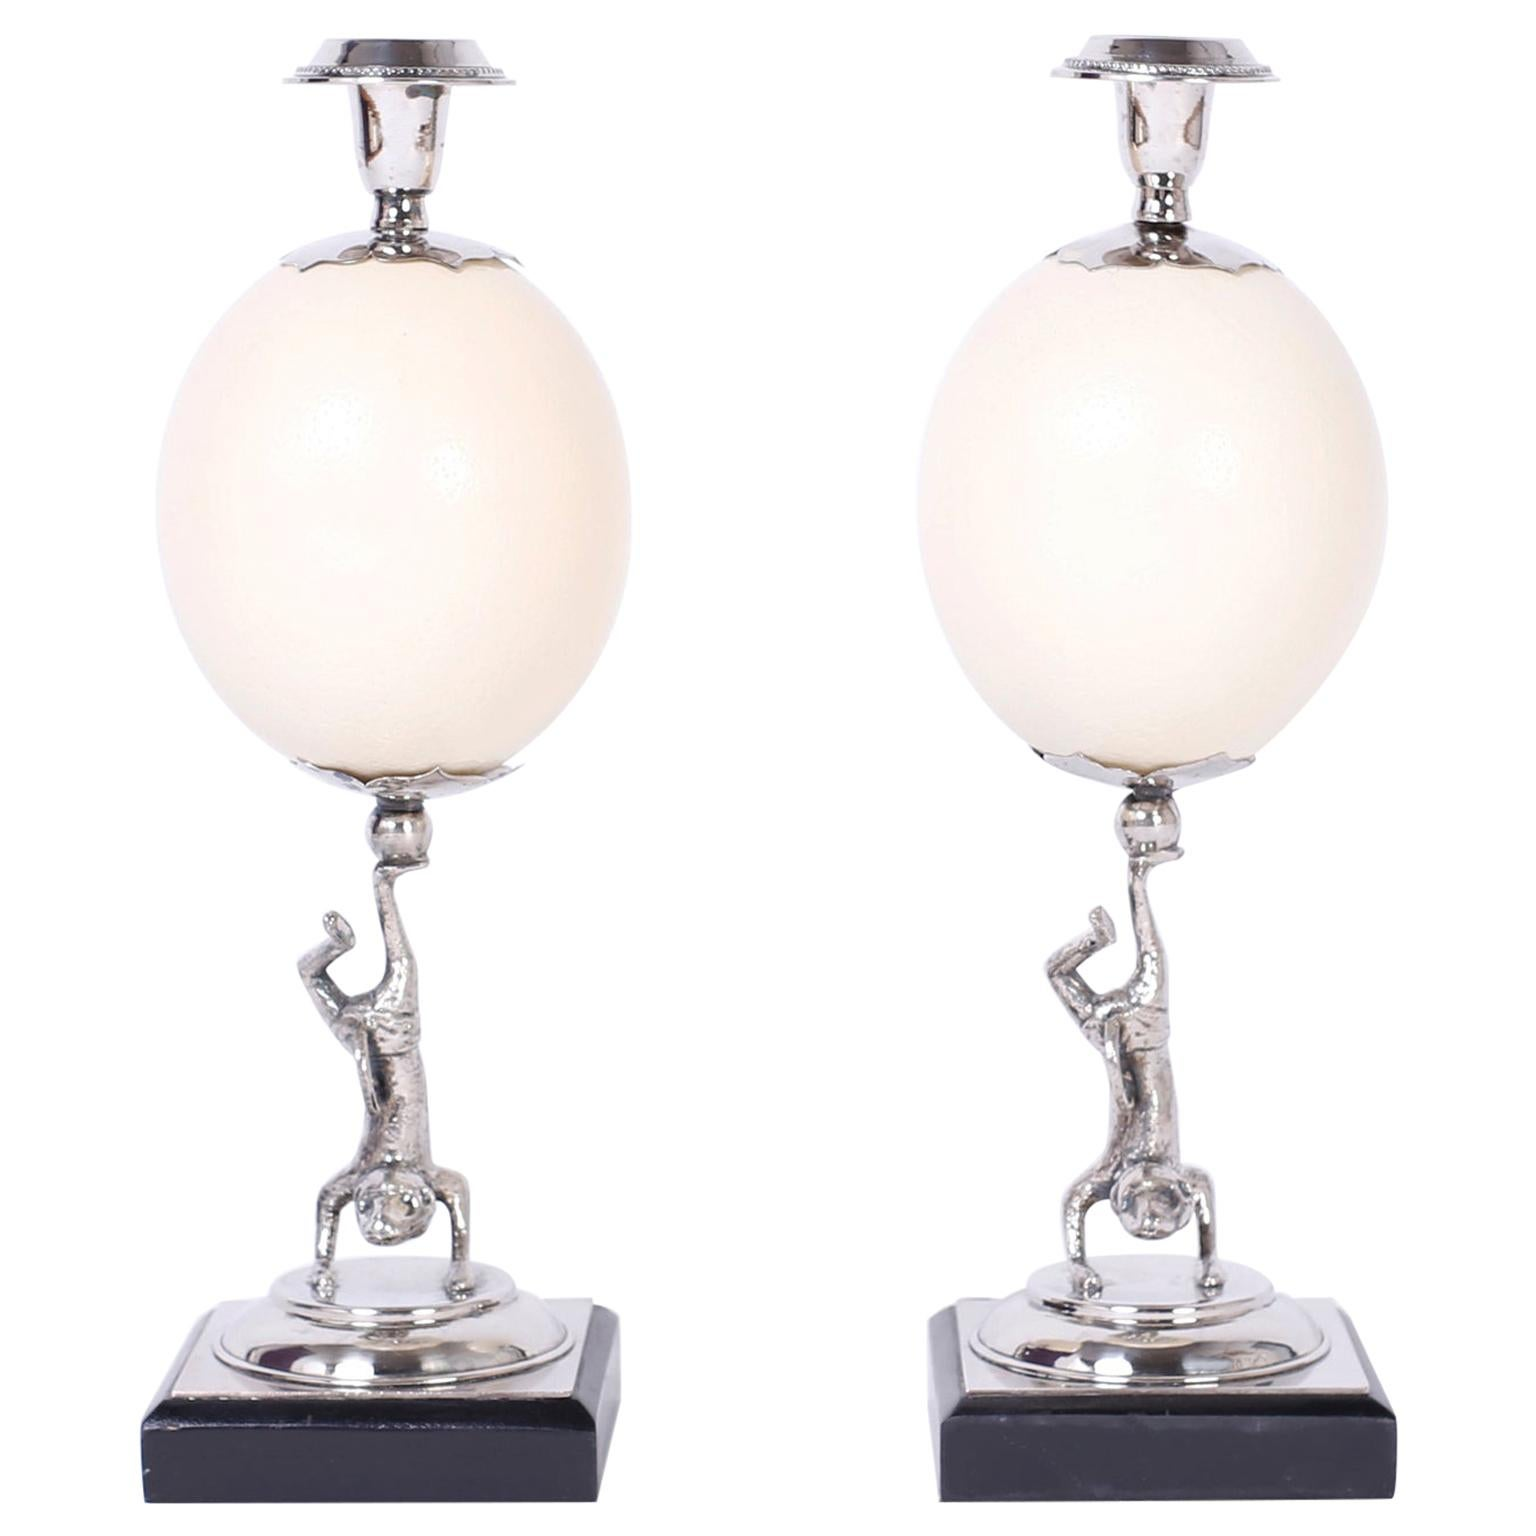 Pair of Figura Lizardl Ostrich Egg Candlesticks by Redmile